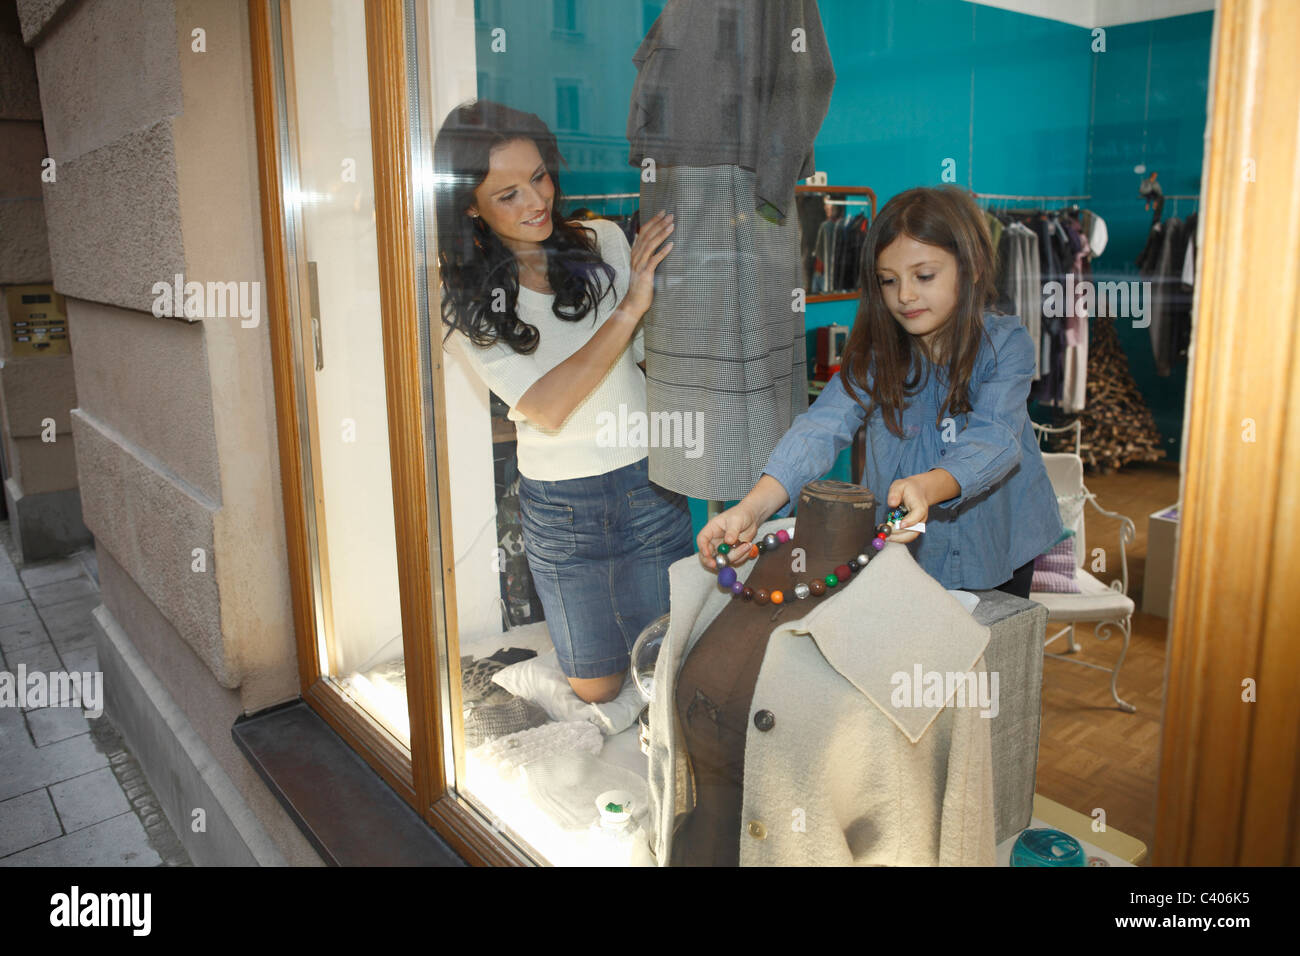 woman and girl dressing shop mannequin - Stock Image